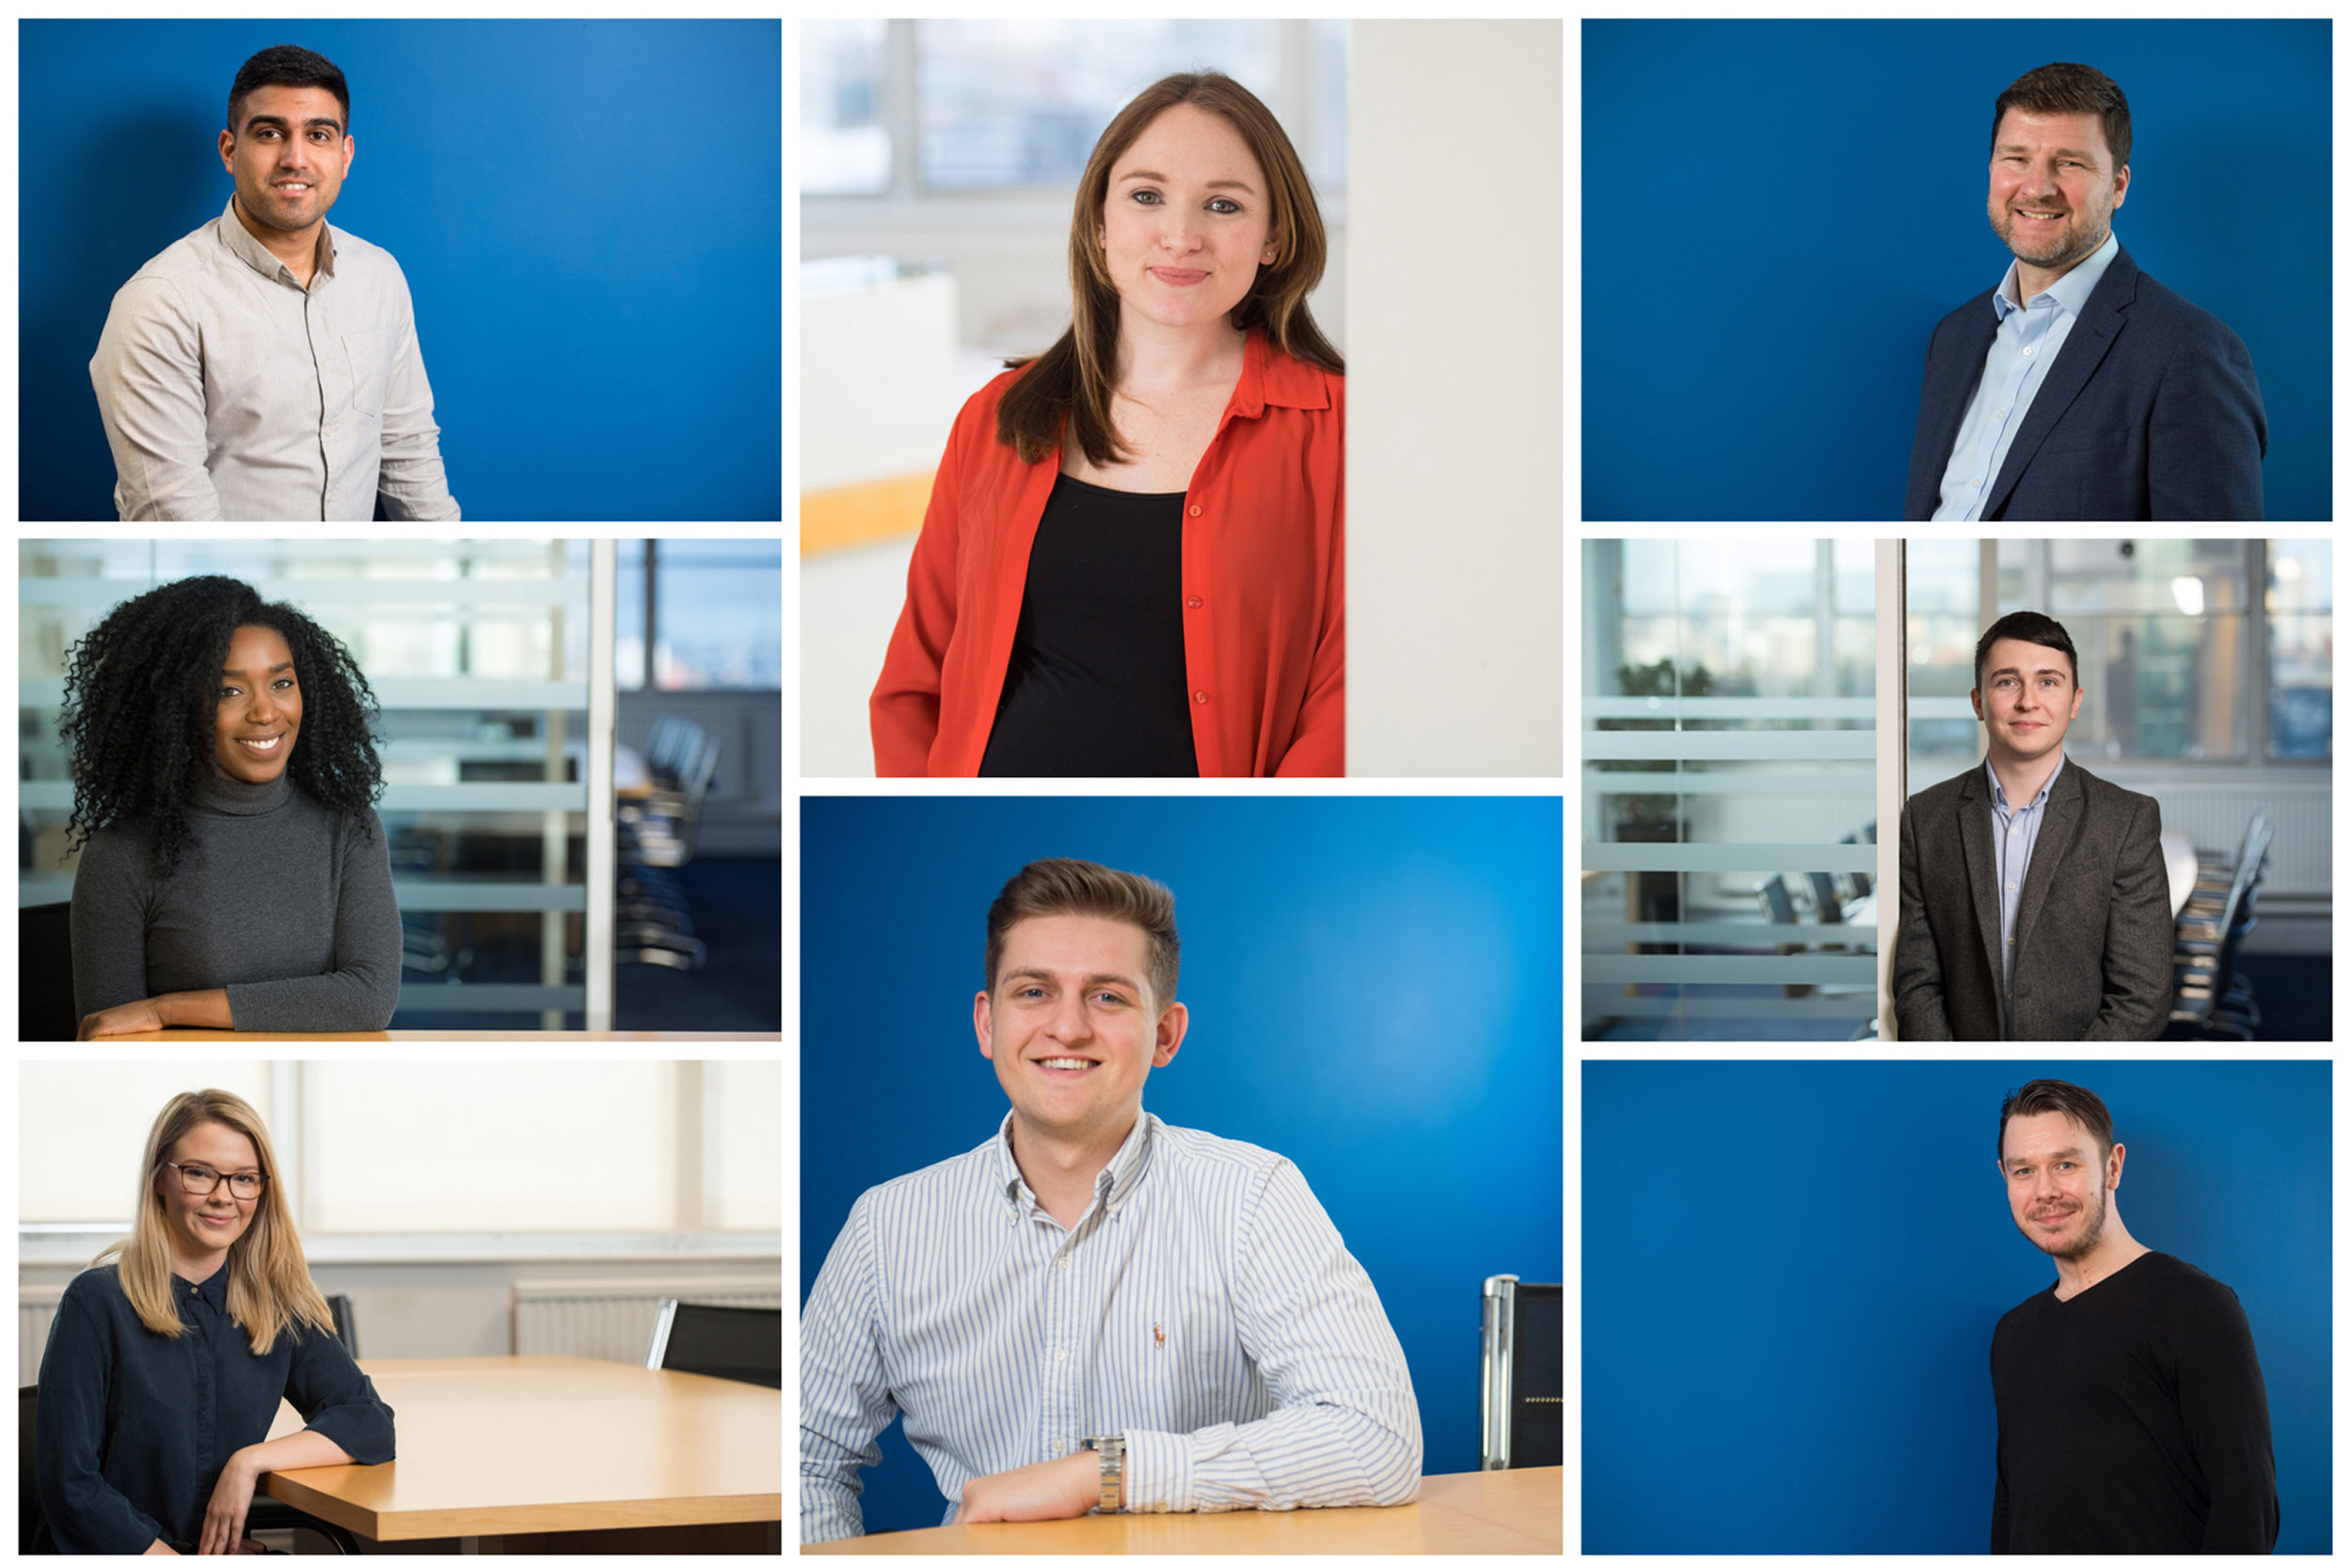 Freelance team portraits for business in Manchester